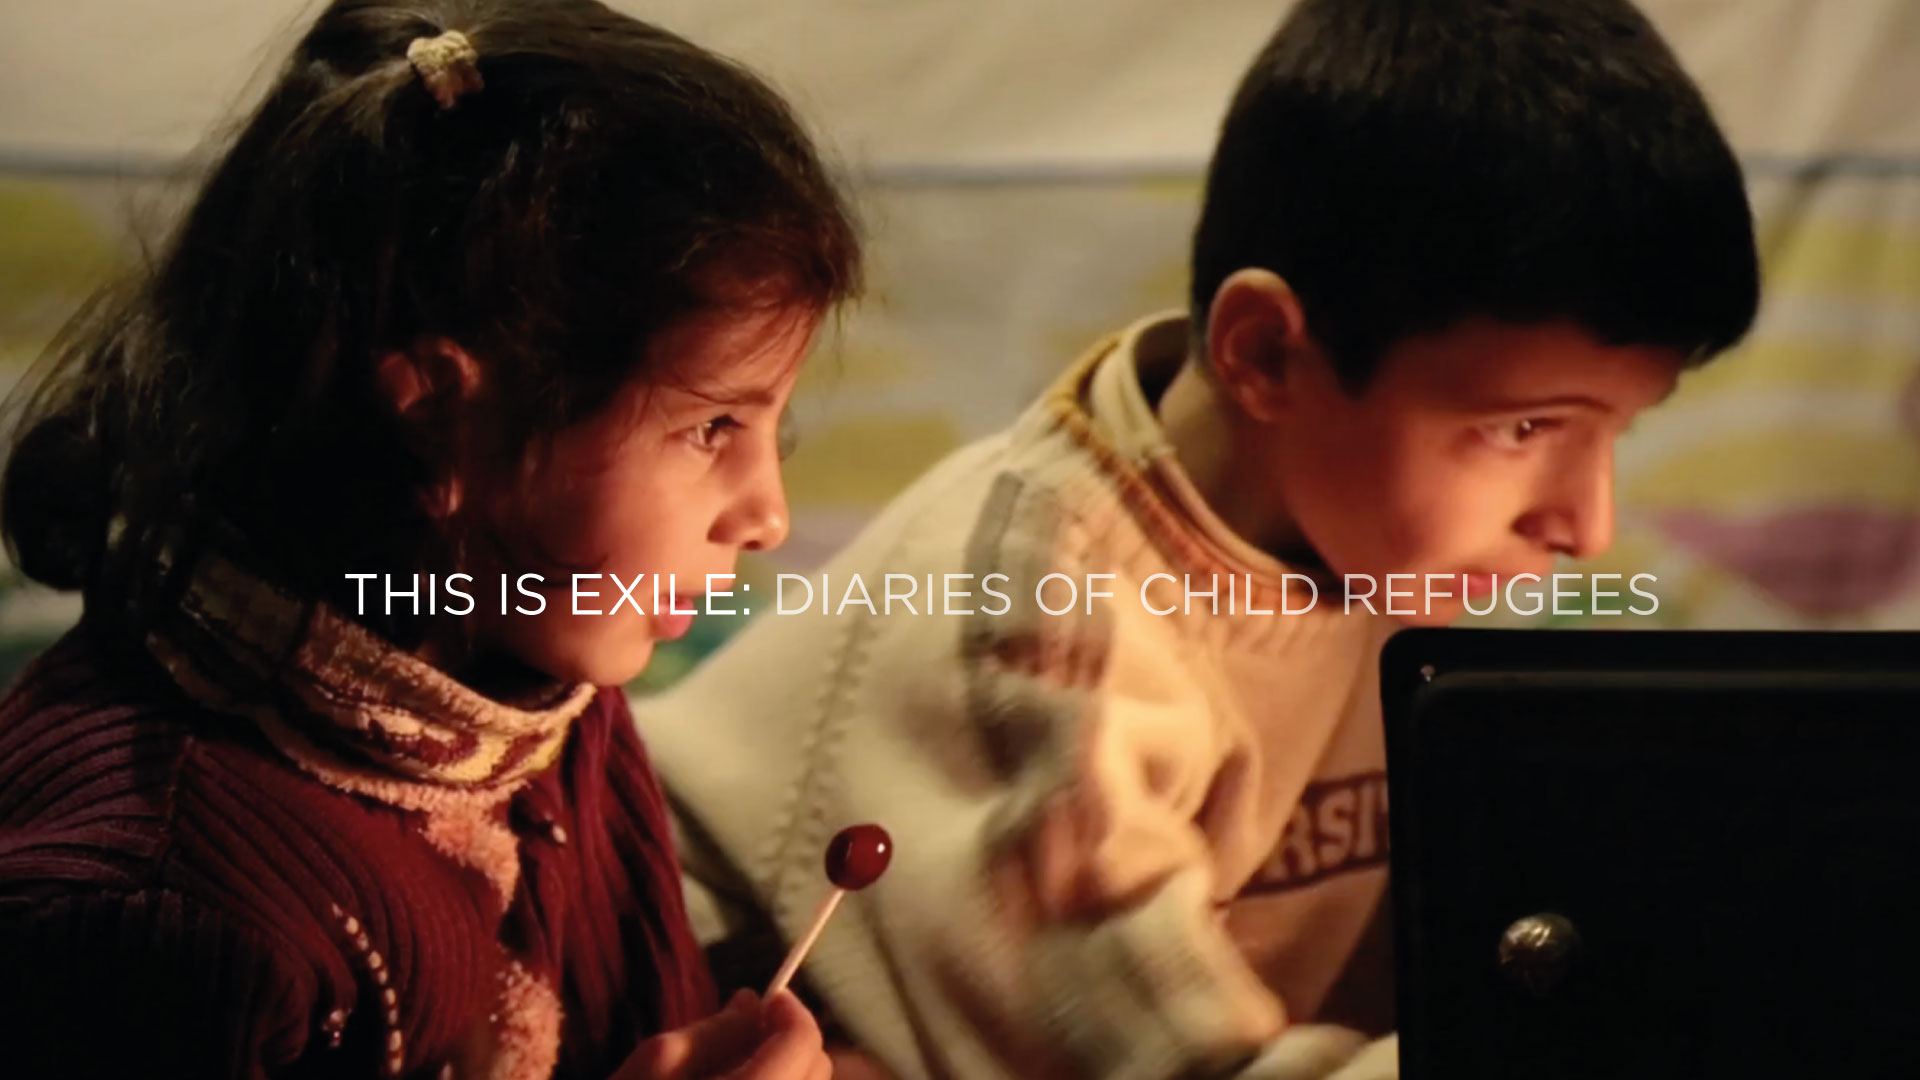 THIS IS EXILE: DIARIES OF CHILD REFUGEES - INTERNATIONAL JURY PRIZE 2015Document Film FestivalOFFICIAL SELECTIONInternational Documentary Film Festival Amsterdam 2015